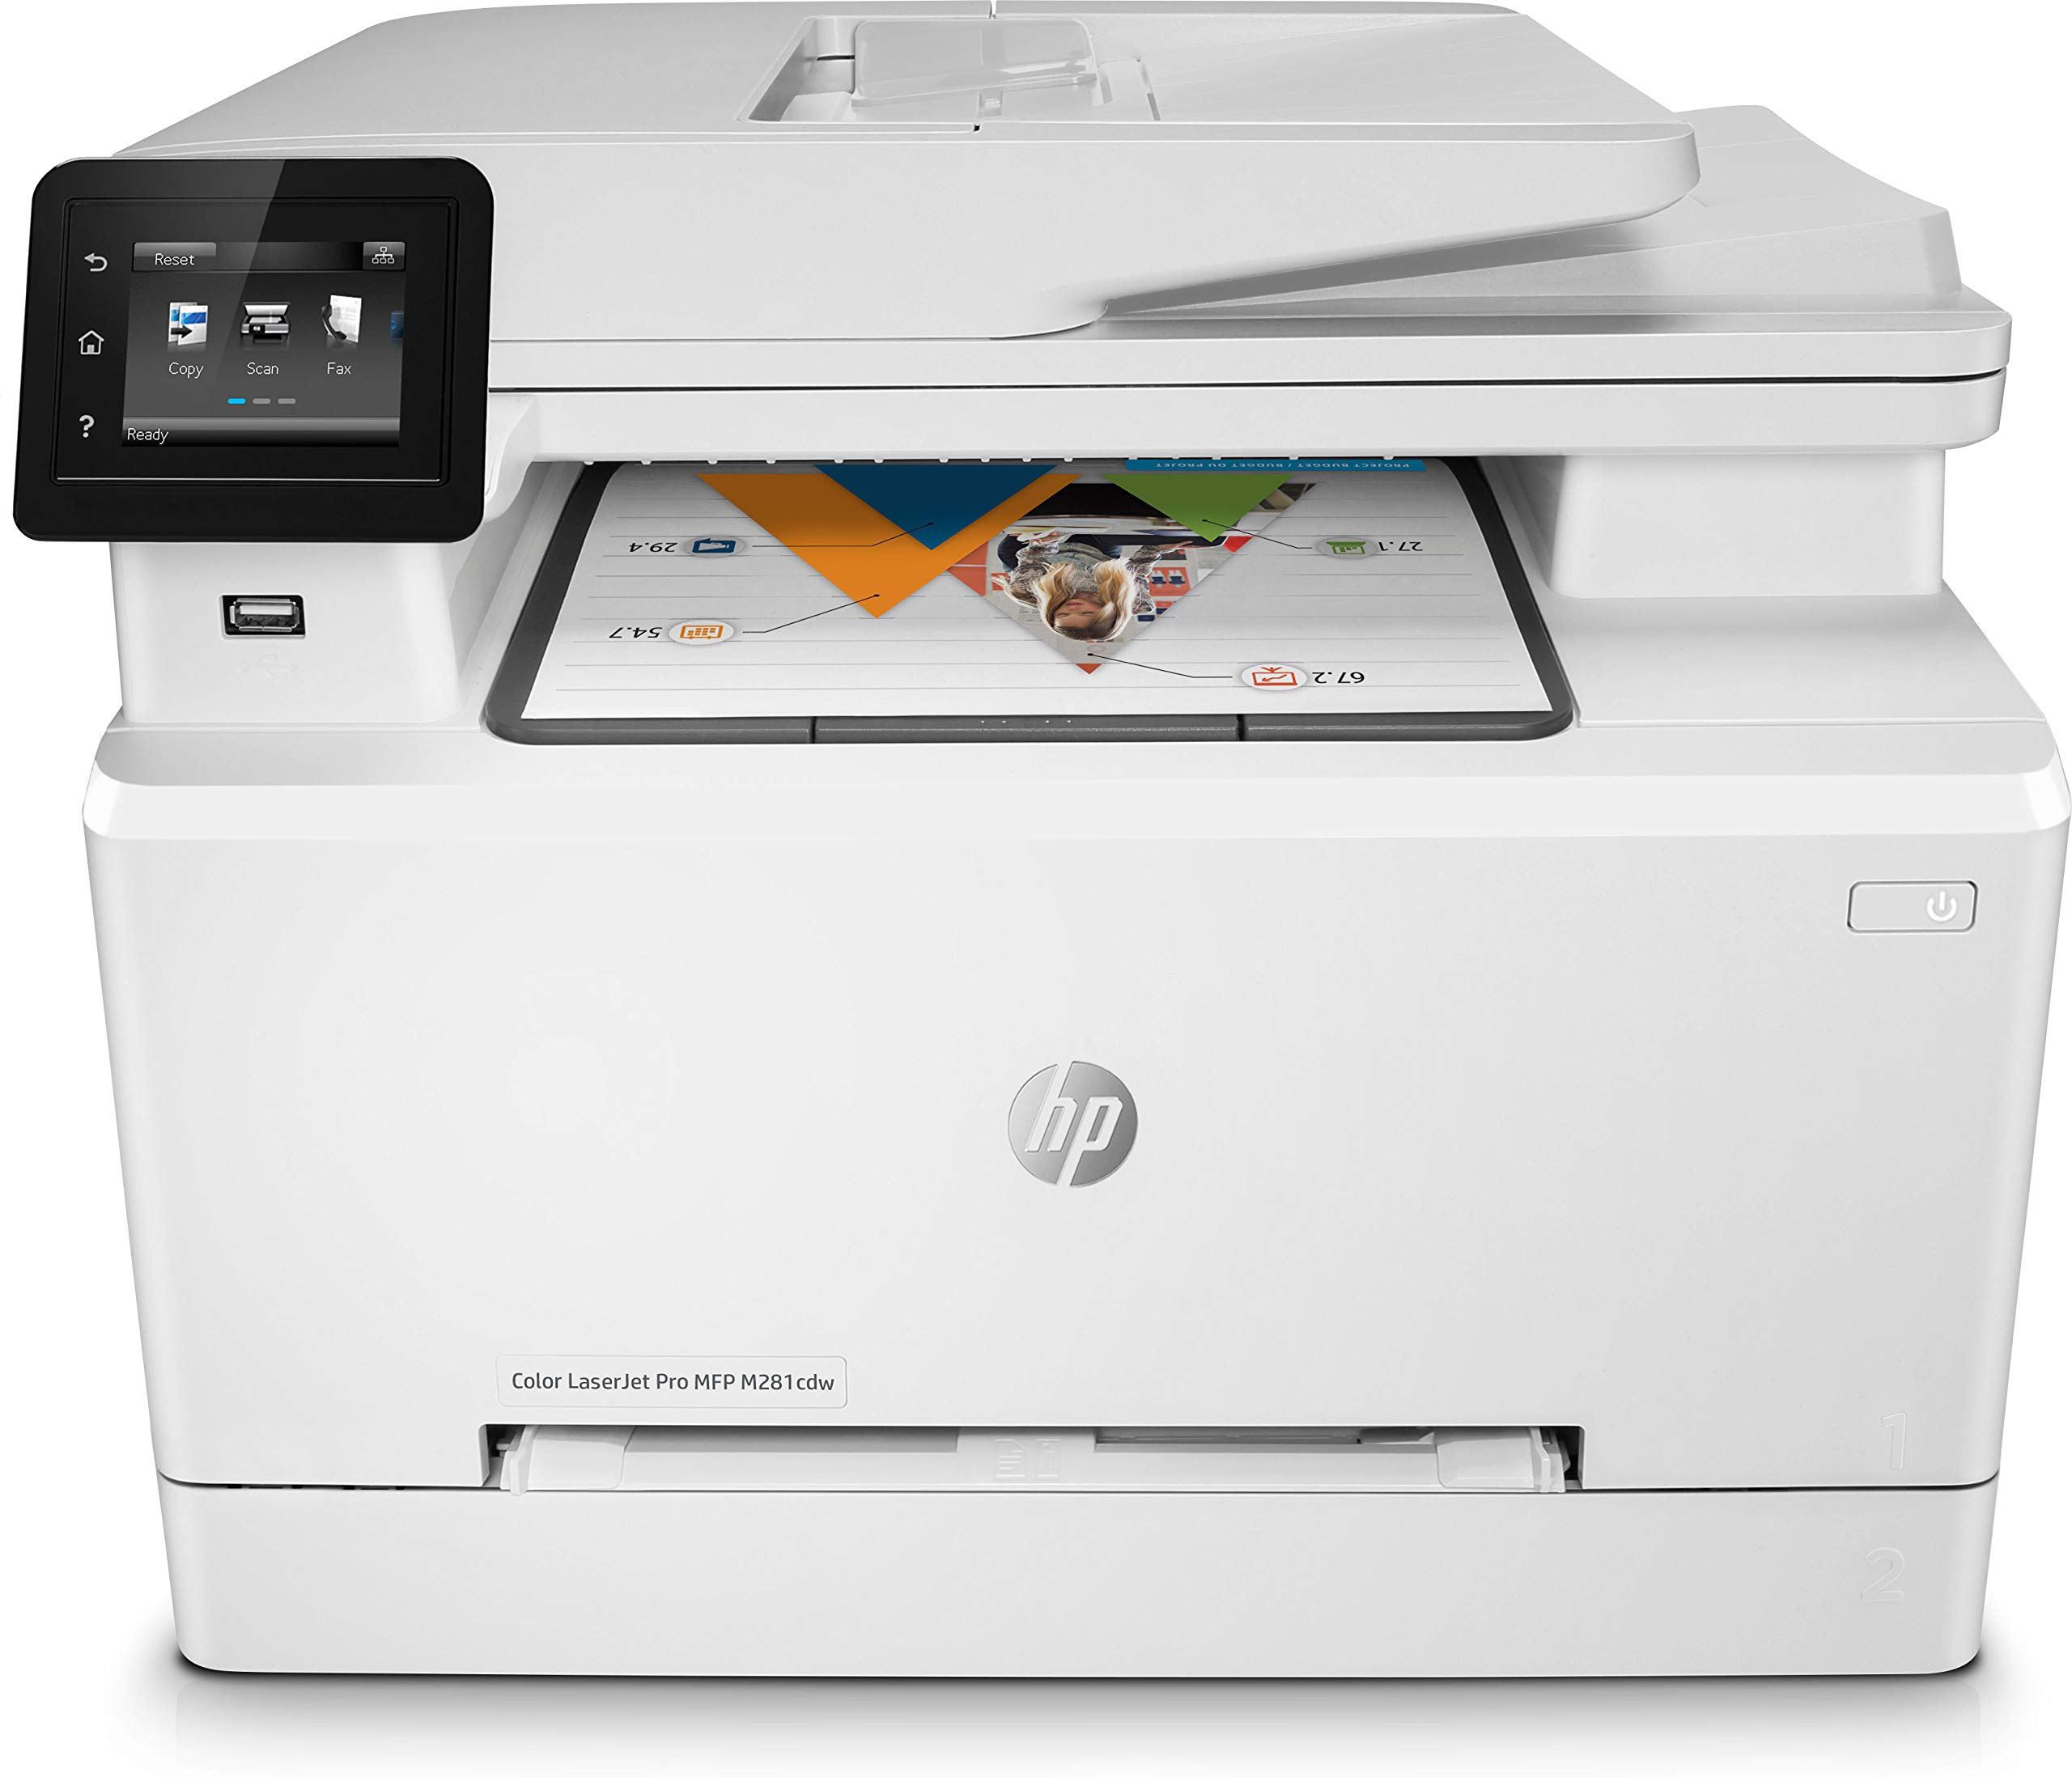 HP Colour LaserJet Pro MFP M281fdw Wireless Multifunction Printer with Fax